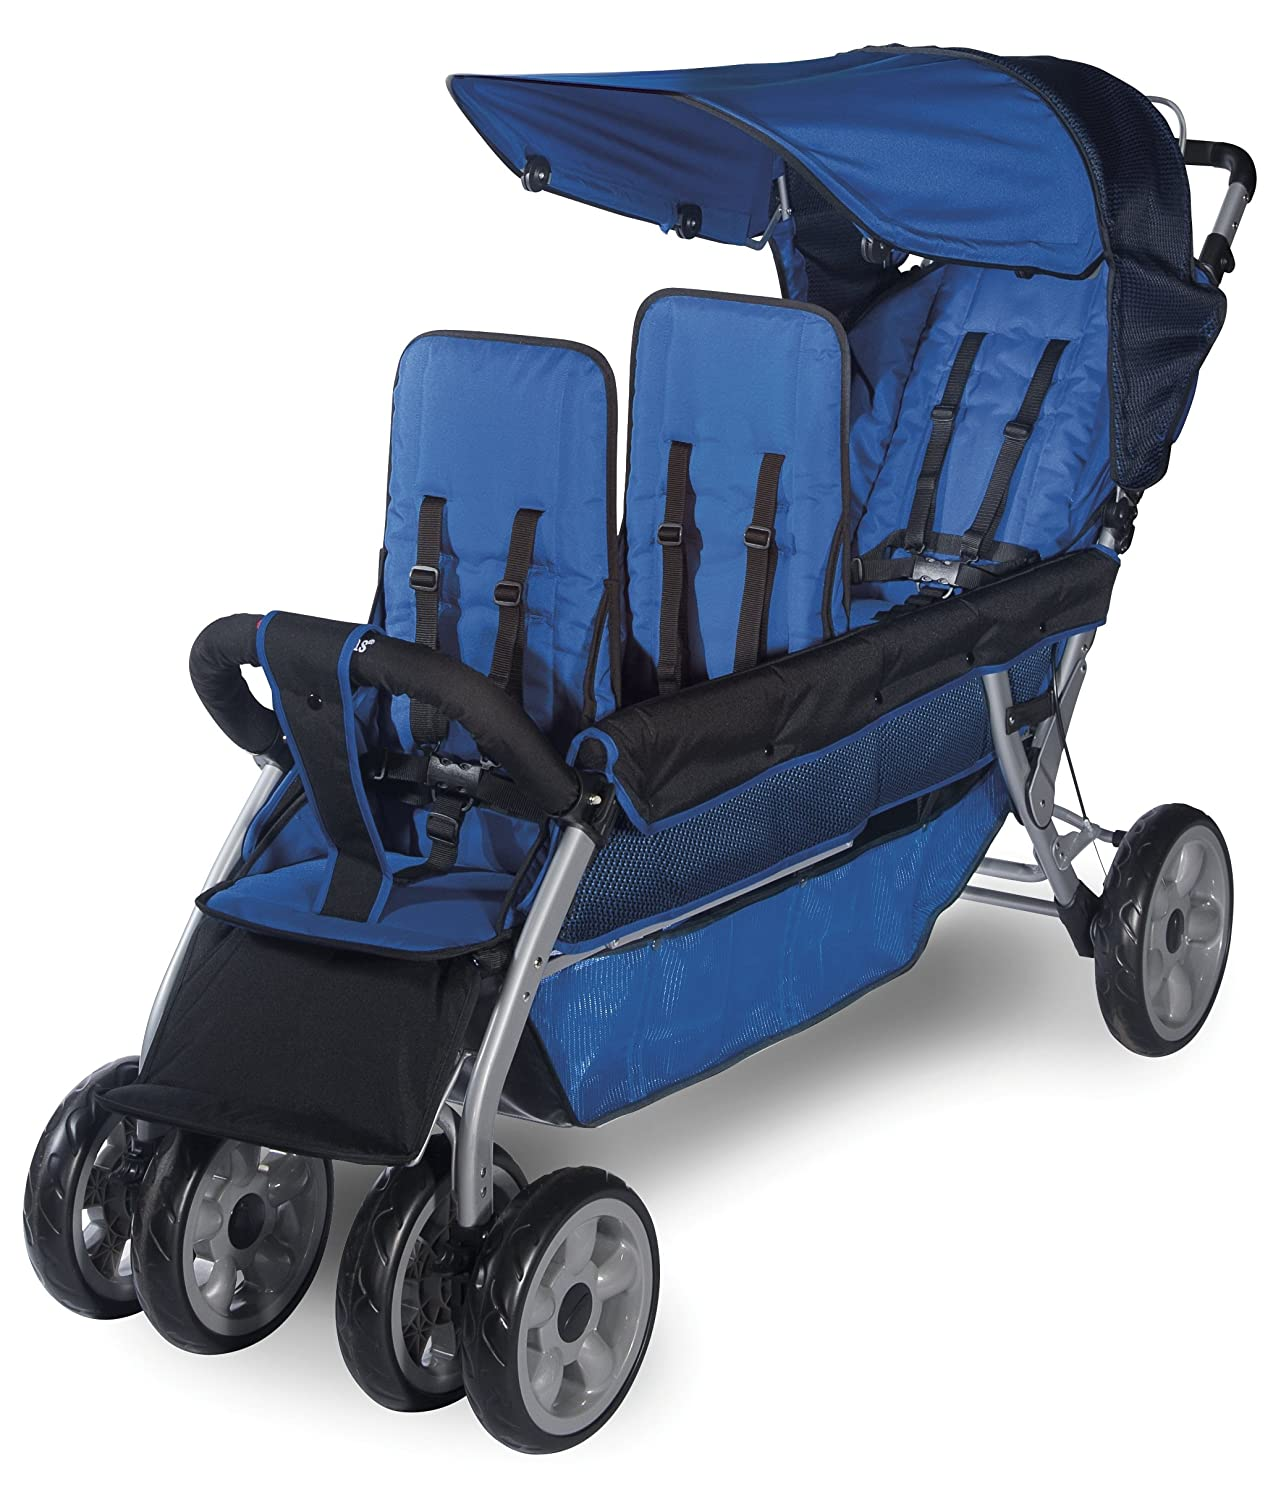 Amazon Foundations Worldwide Foundations Re te Blue 3 Passenger Stroller LX3 Tandem Strollers Baby